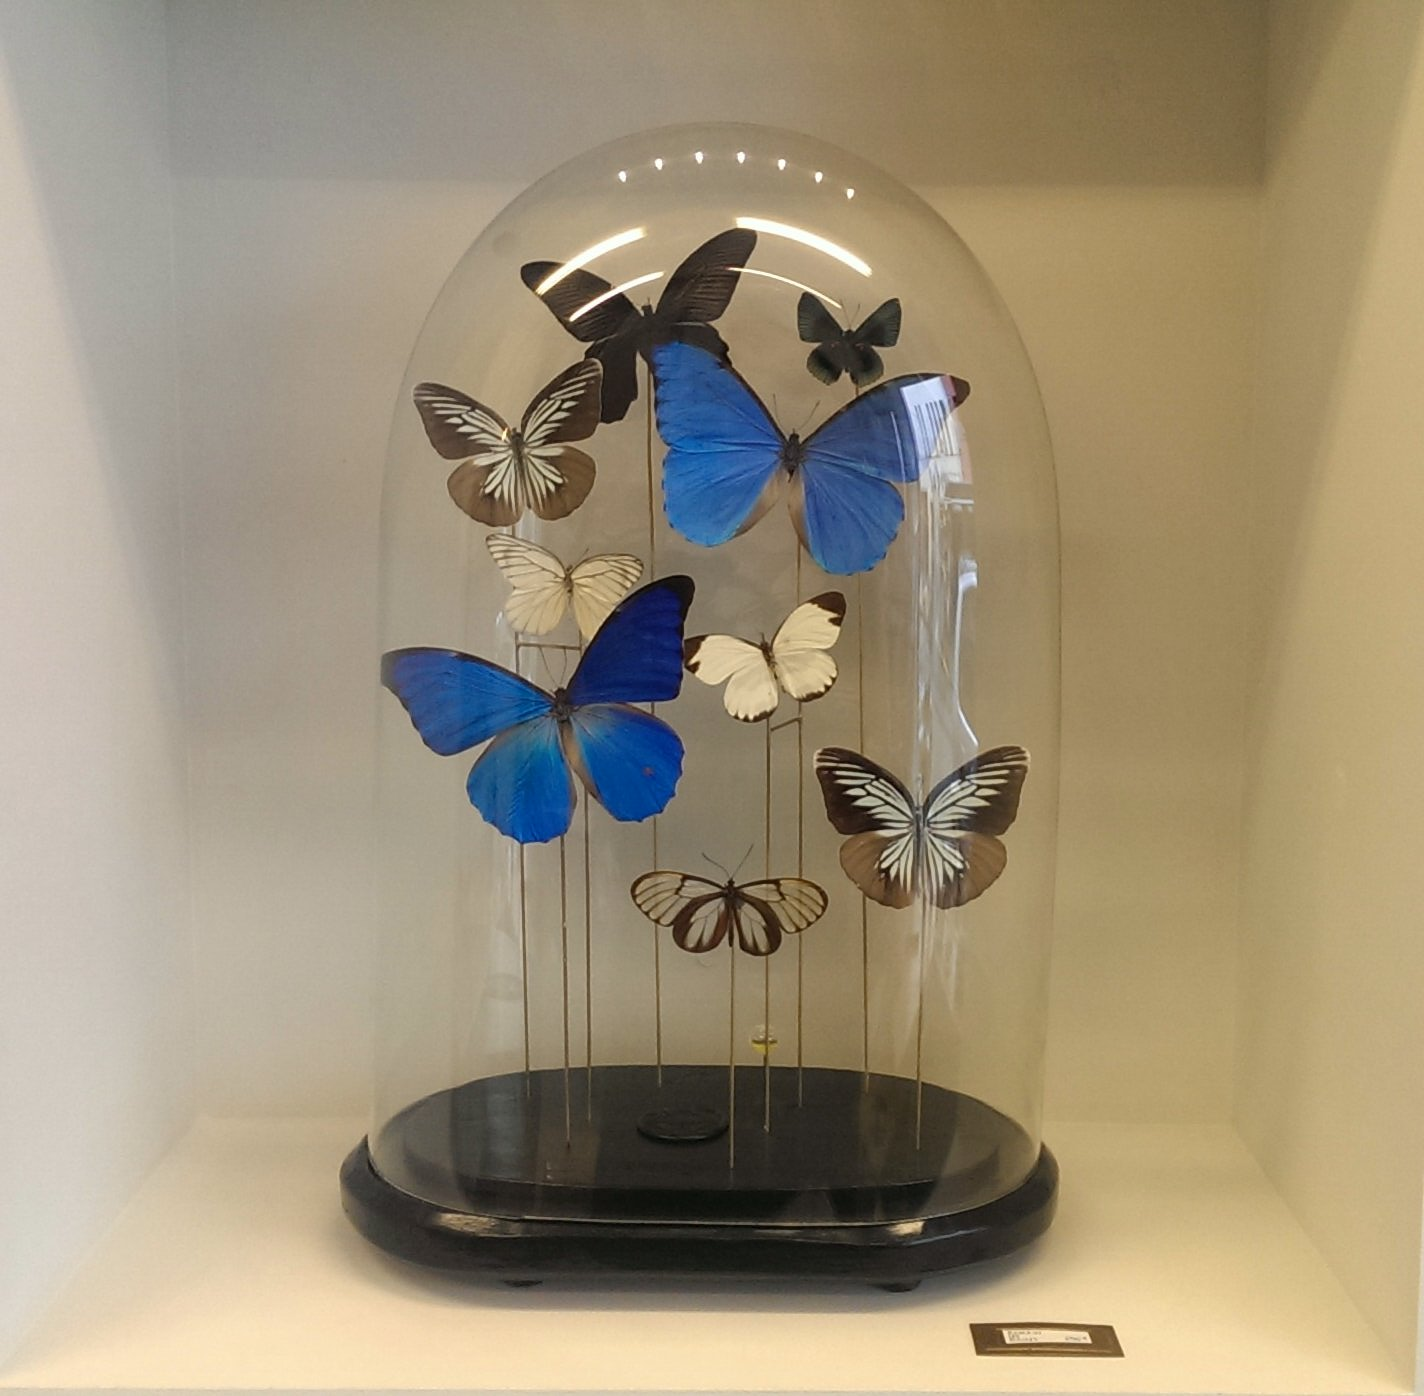 Colourful butterflies in a globe